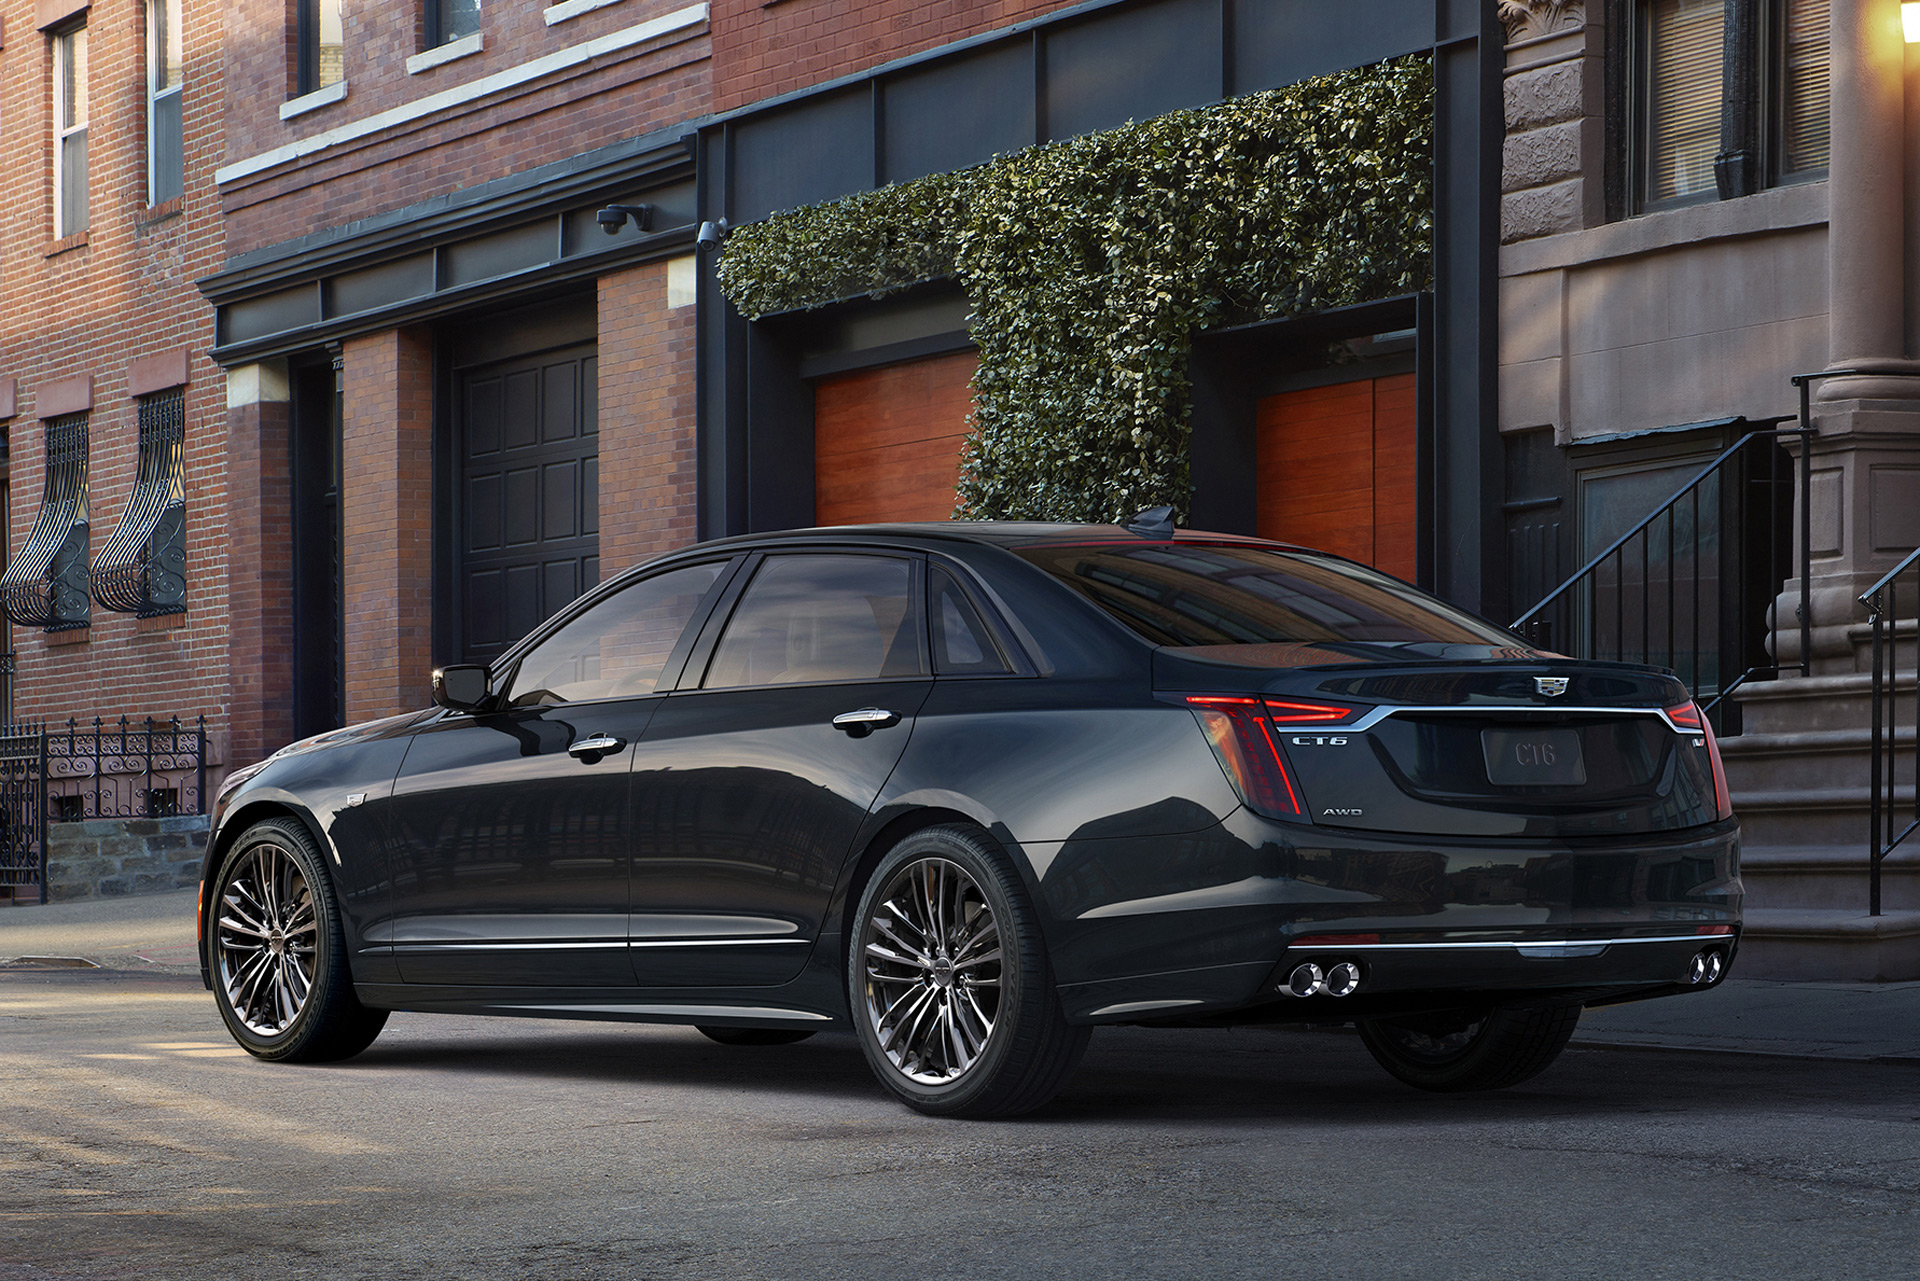 81 All New 2020 Kia K900 Research New